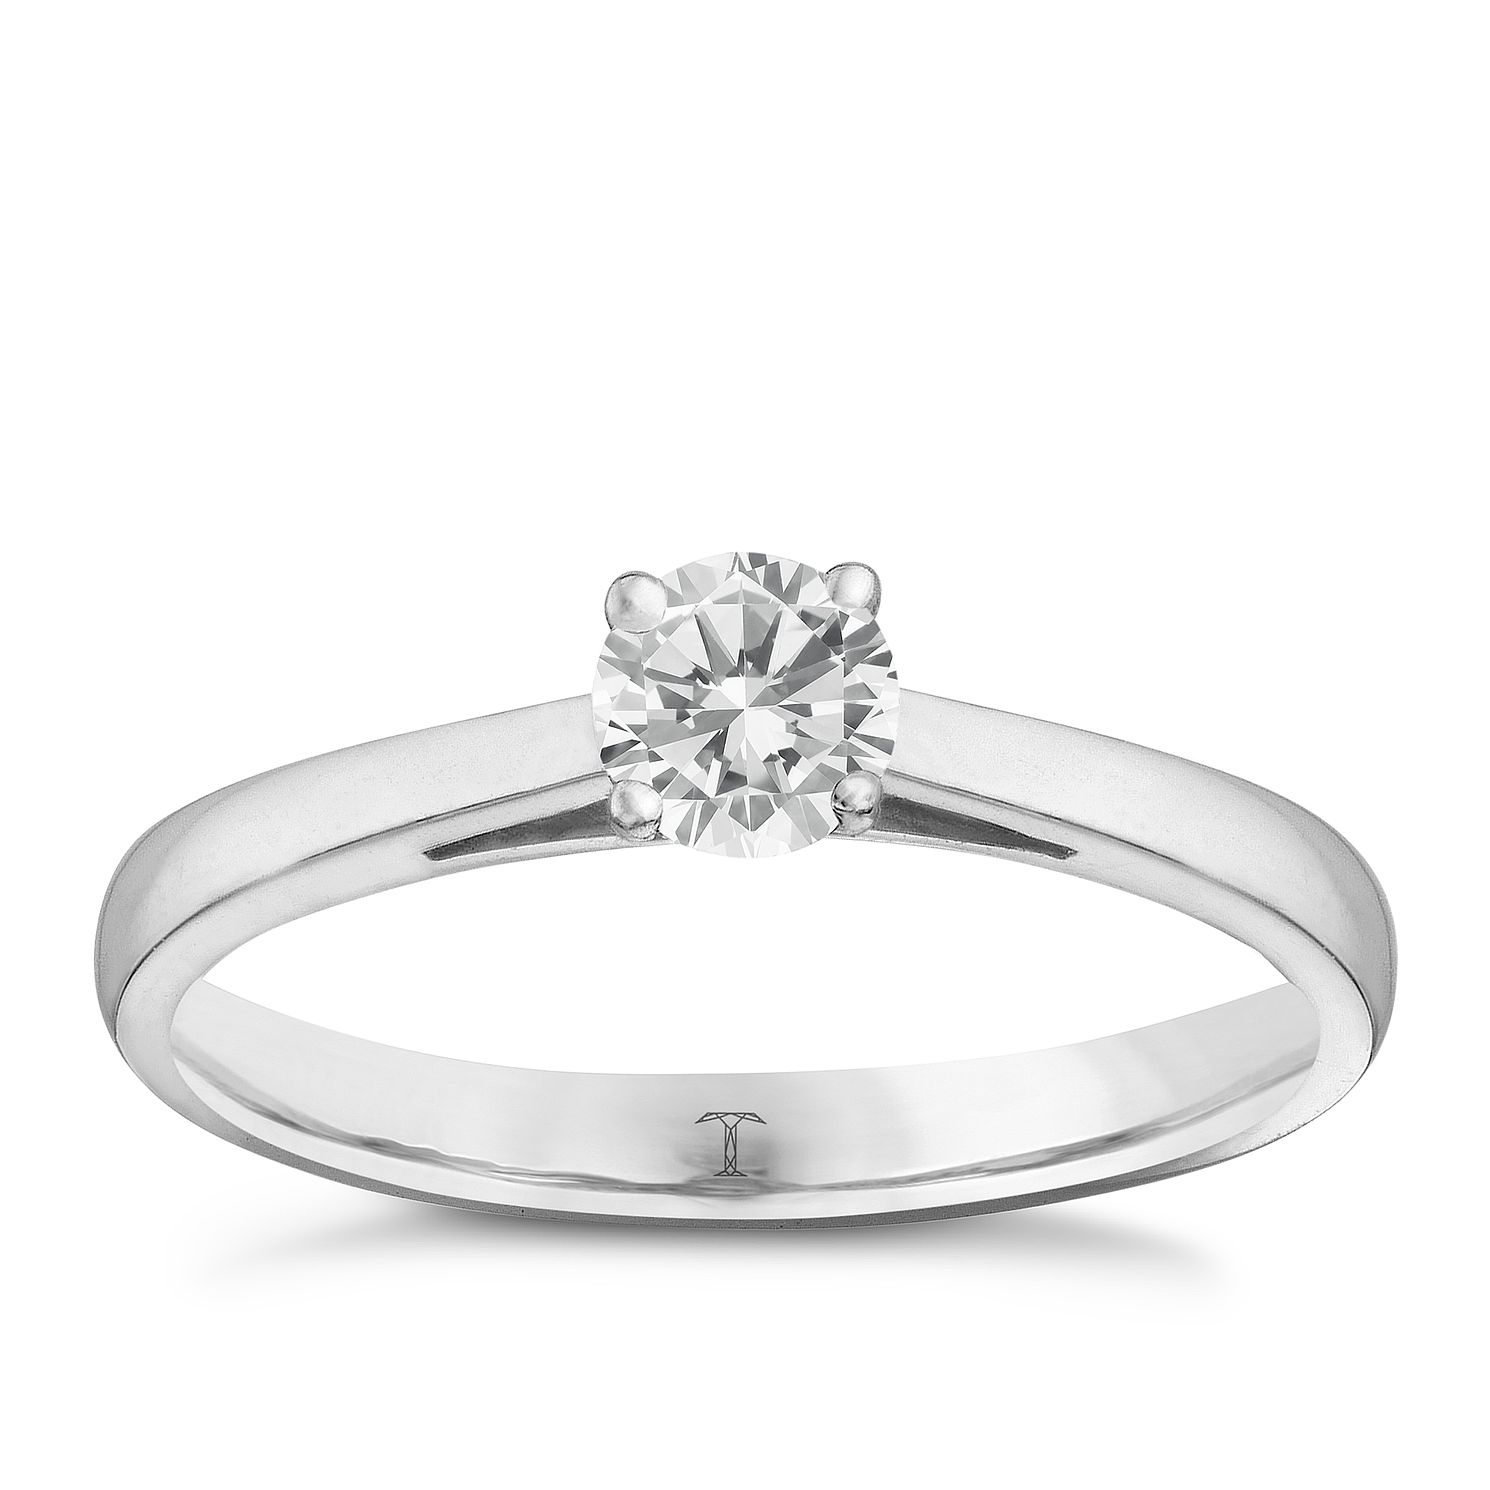 Tolkowsky Platinum 2/5ct I-I1 Diamond Ring - Product number 9907793